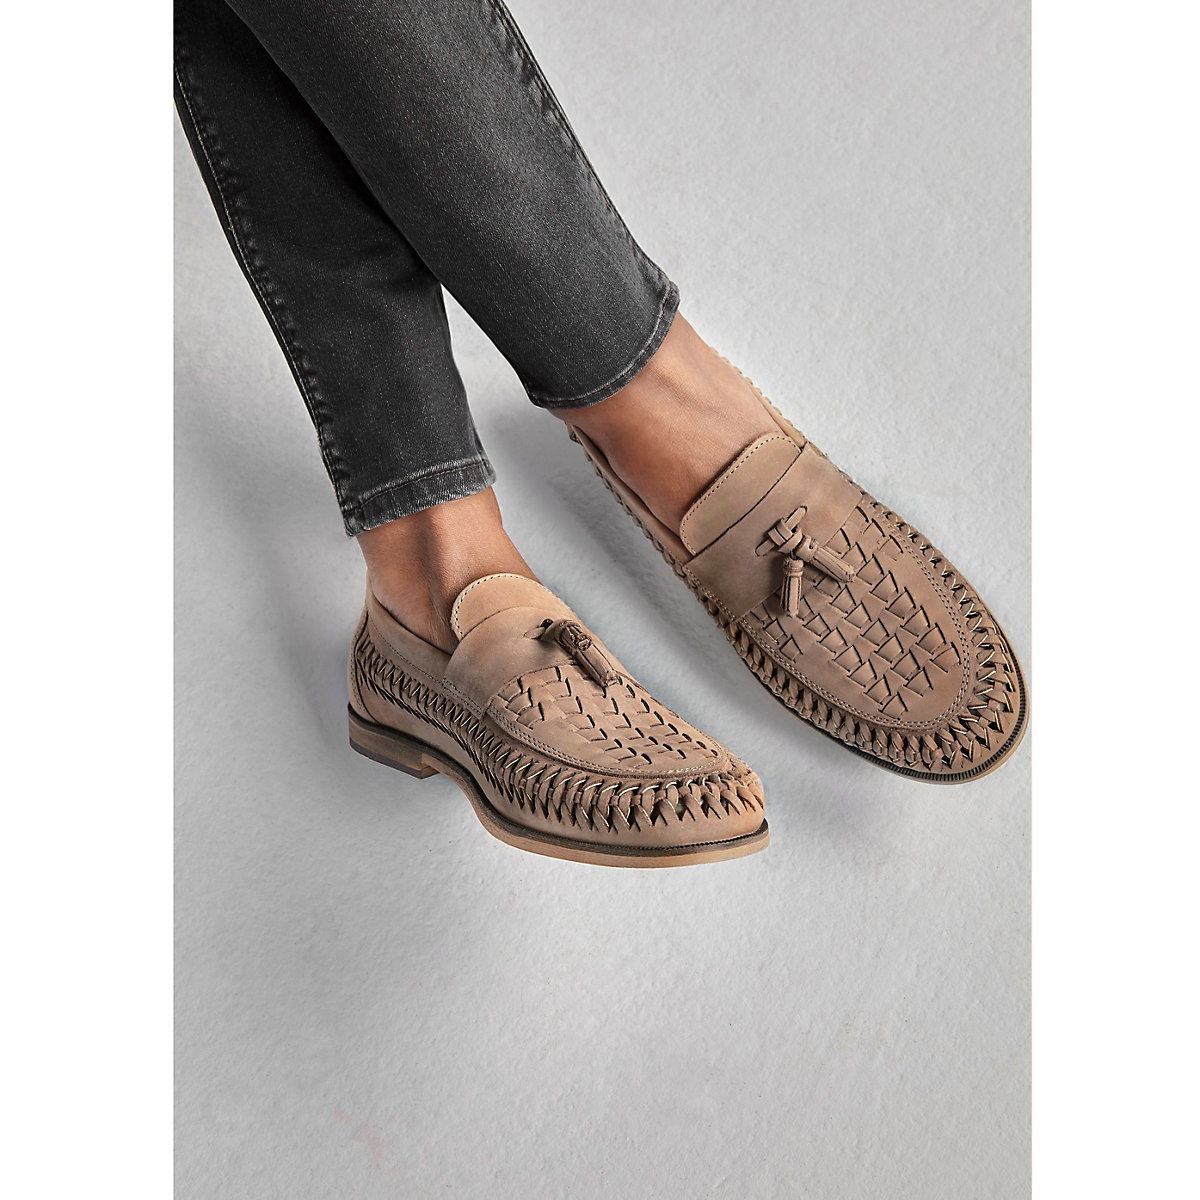 Stone leather woven tassel loafers